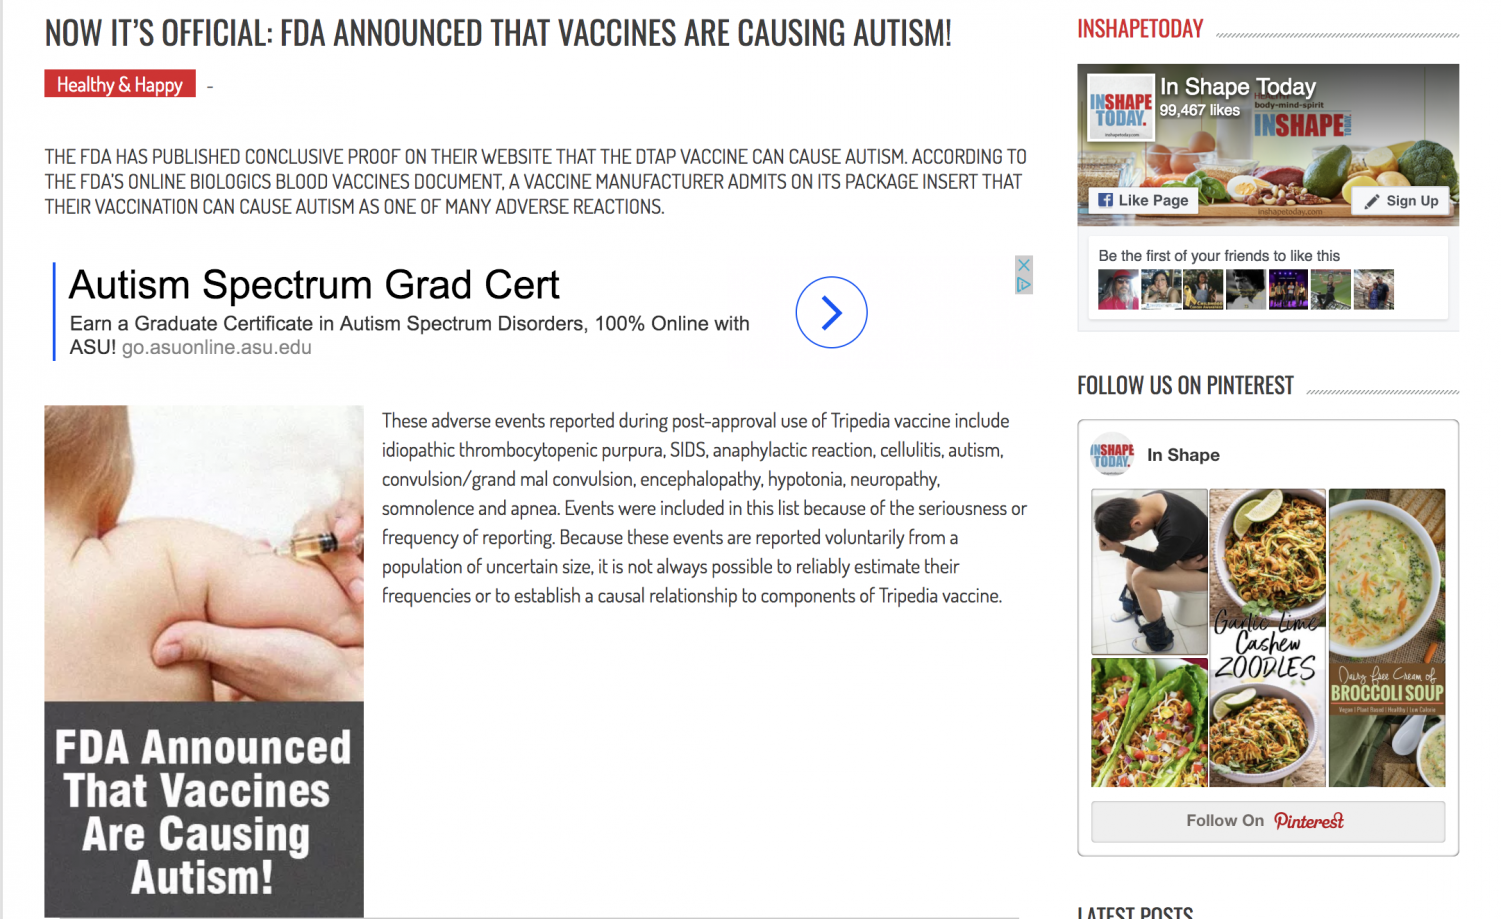 A screencap of an article from the site Inshapetoday.com that incorrectly claims that vaccines cause autism. The article was posted in November 2017.